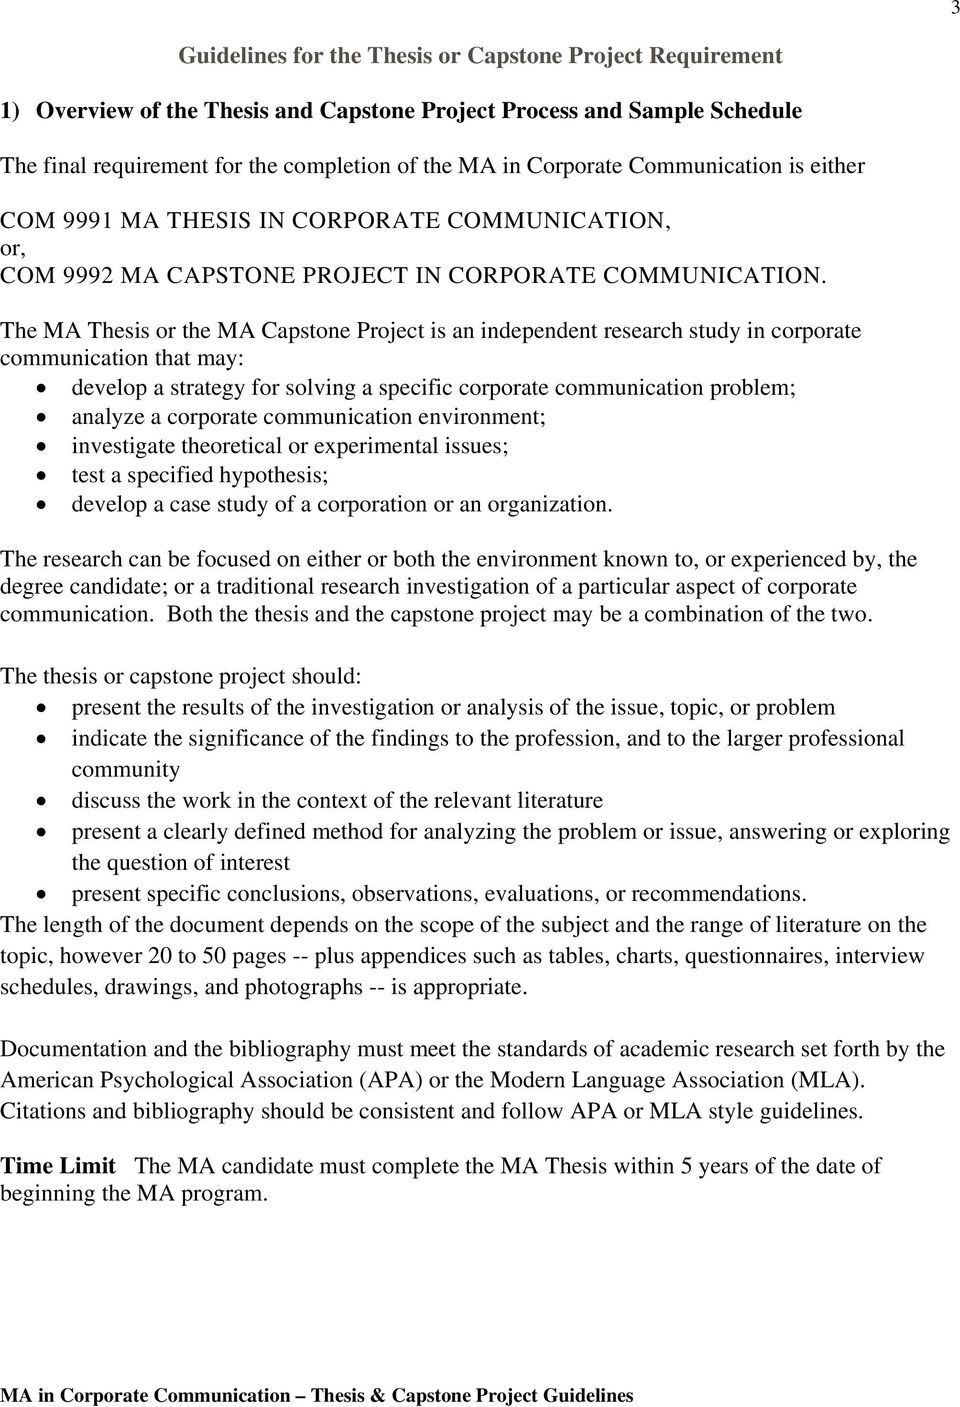 The MA Thesis or the MA Capstone Project is an independent research study in corporate communication that may: develop a strategy for solving a specific corporate communication problem; analyze a